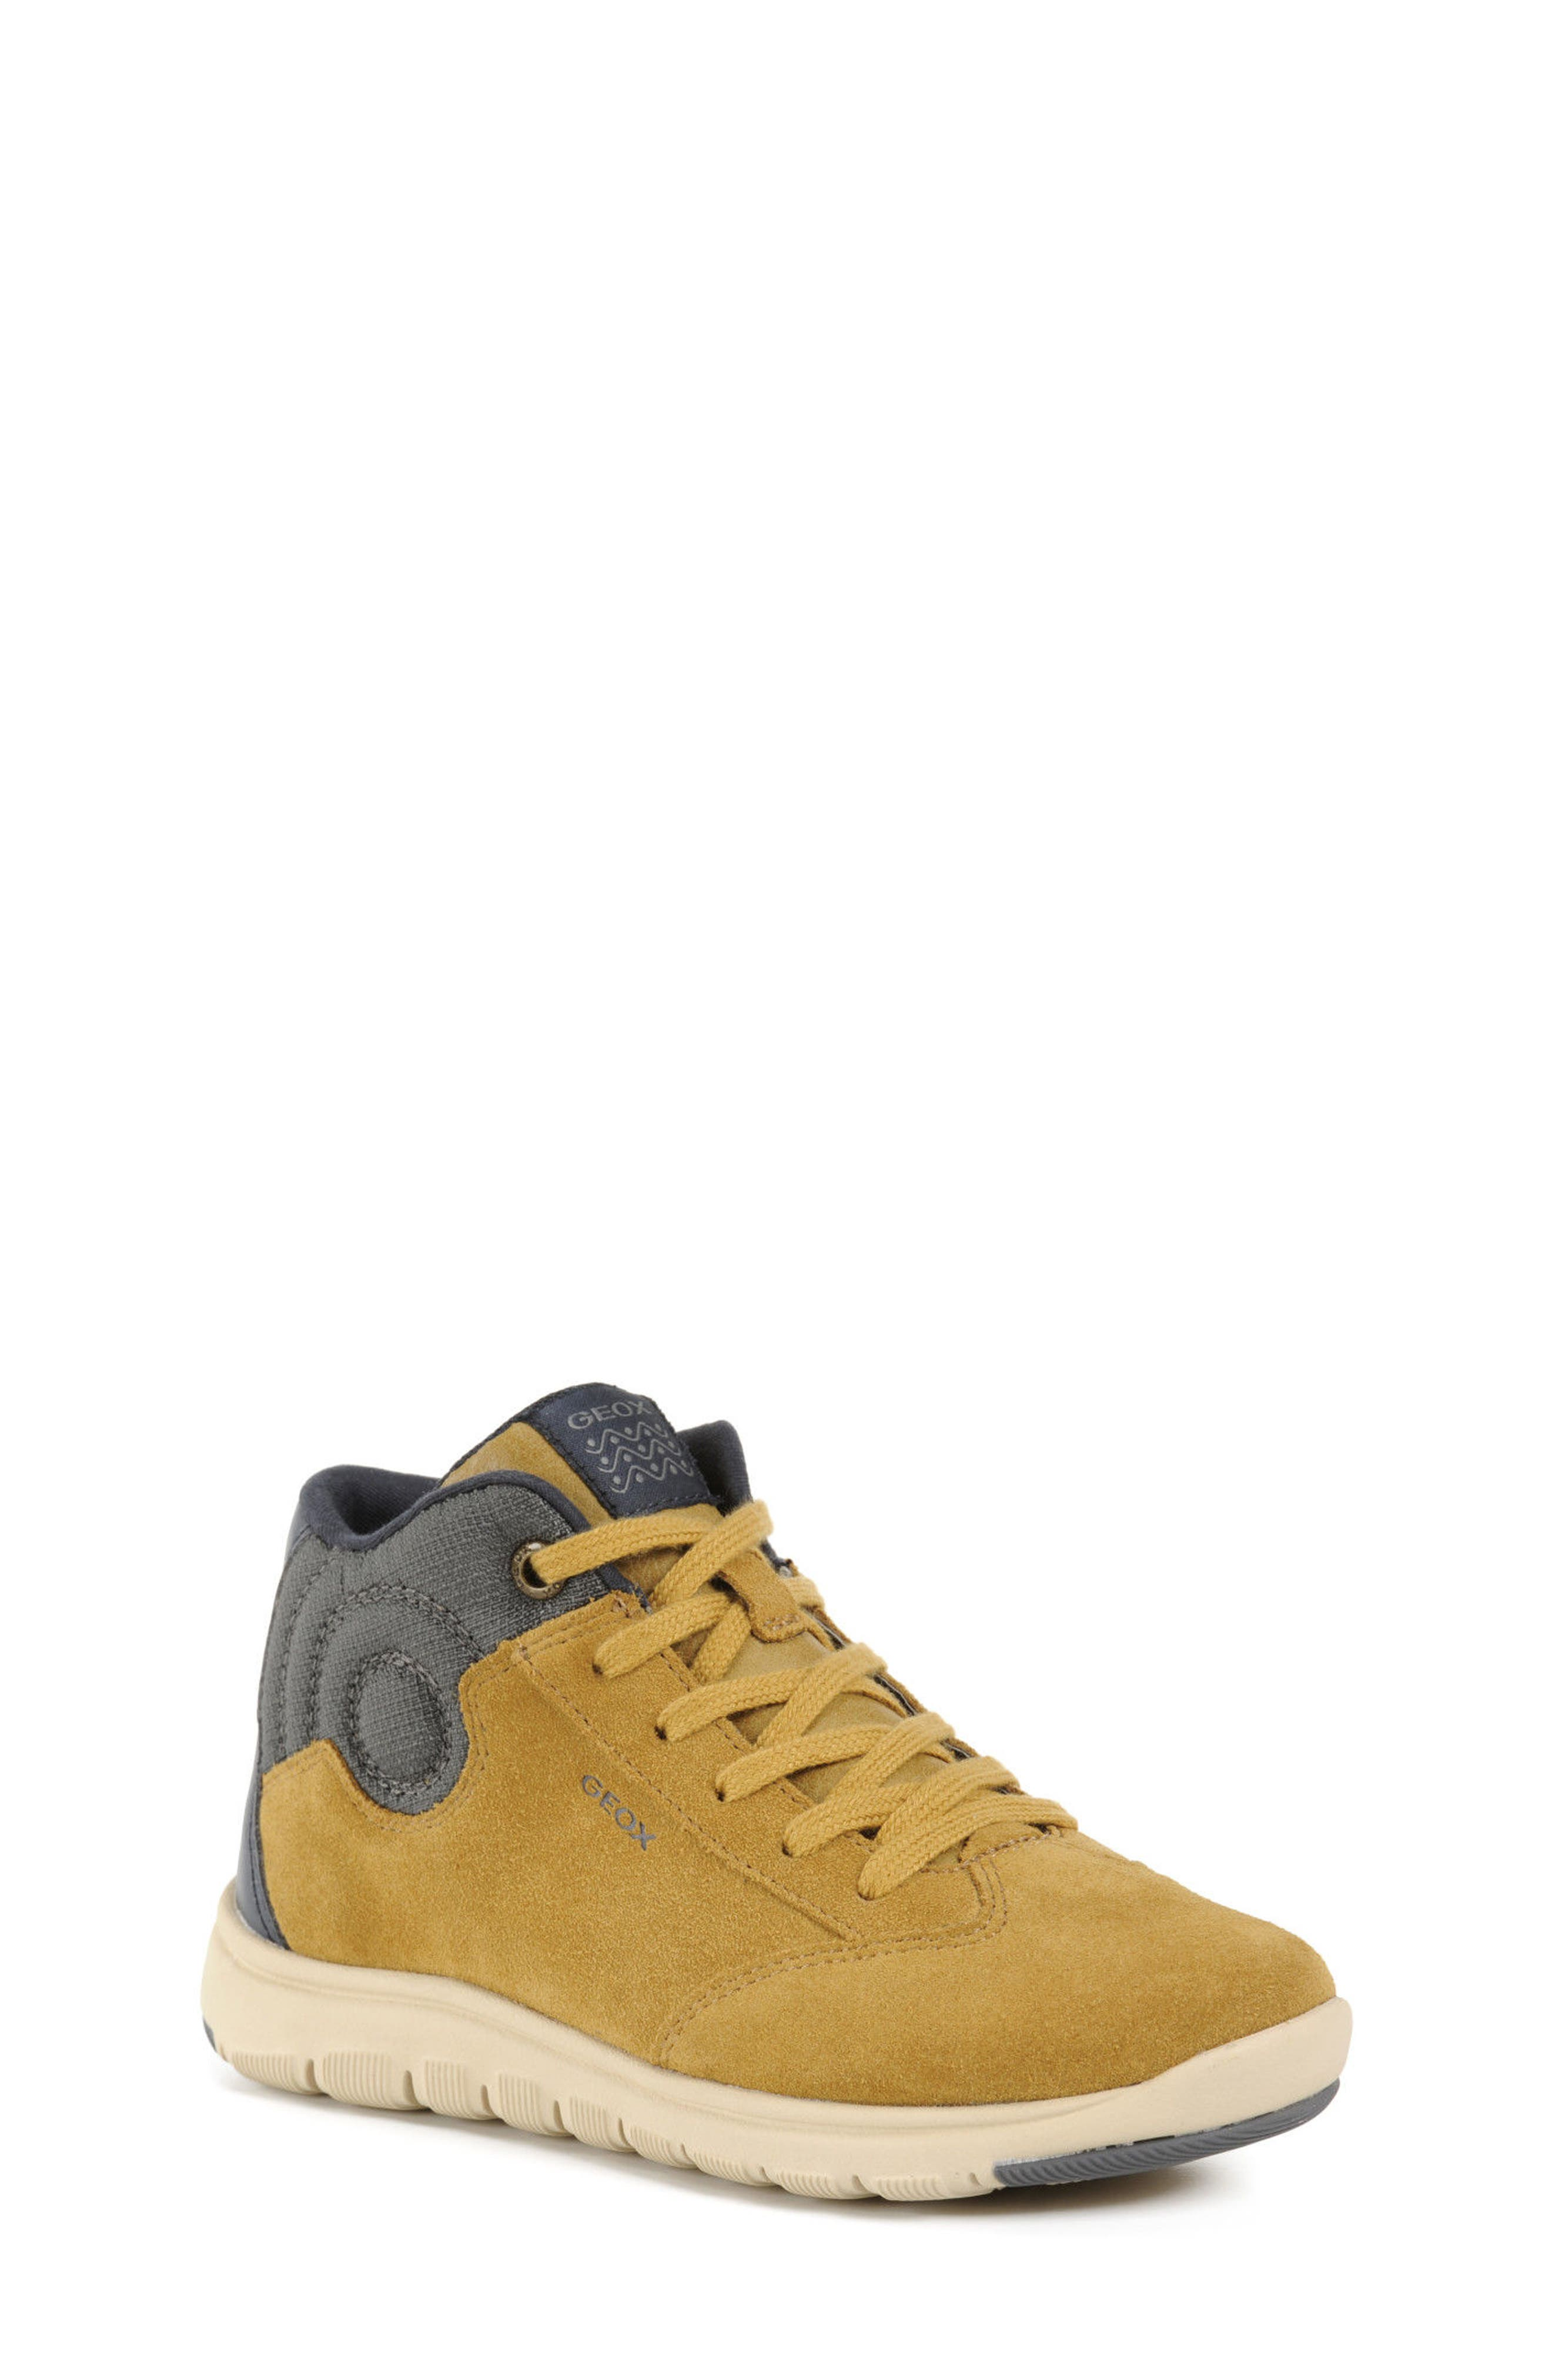 Xunday Mid Top Sneaker,                         Main,                         color,